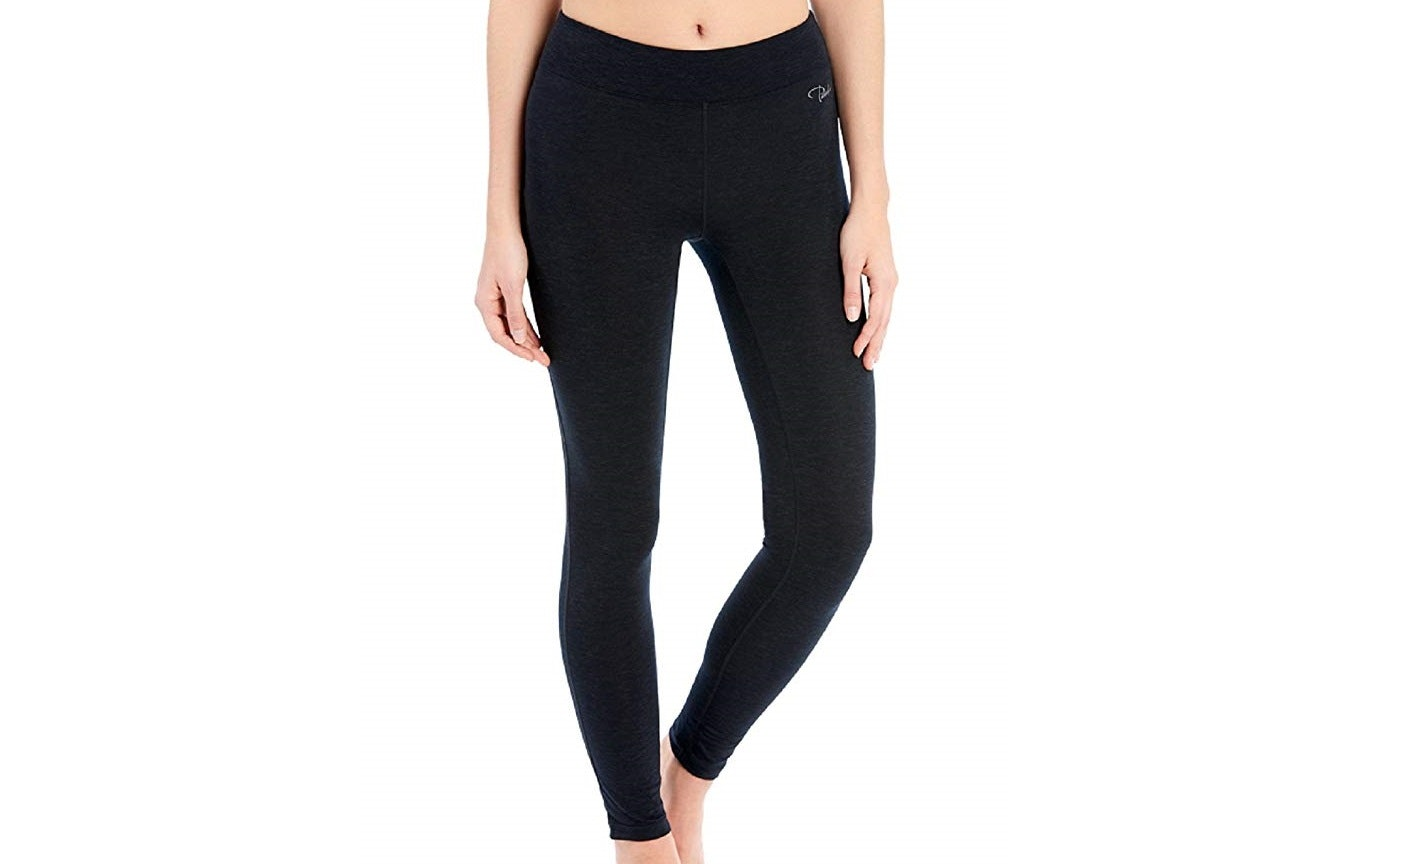 a62fe2144 The 11 Best Warm Leggings For Hiking